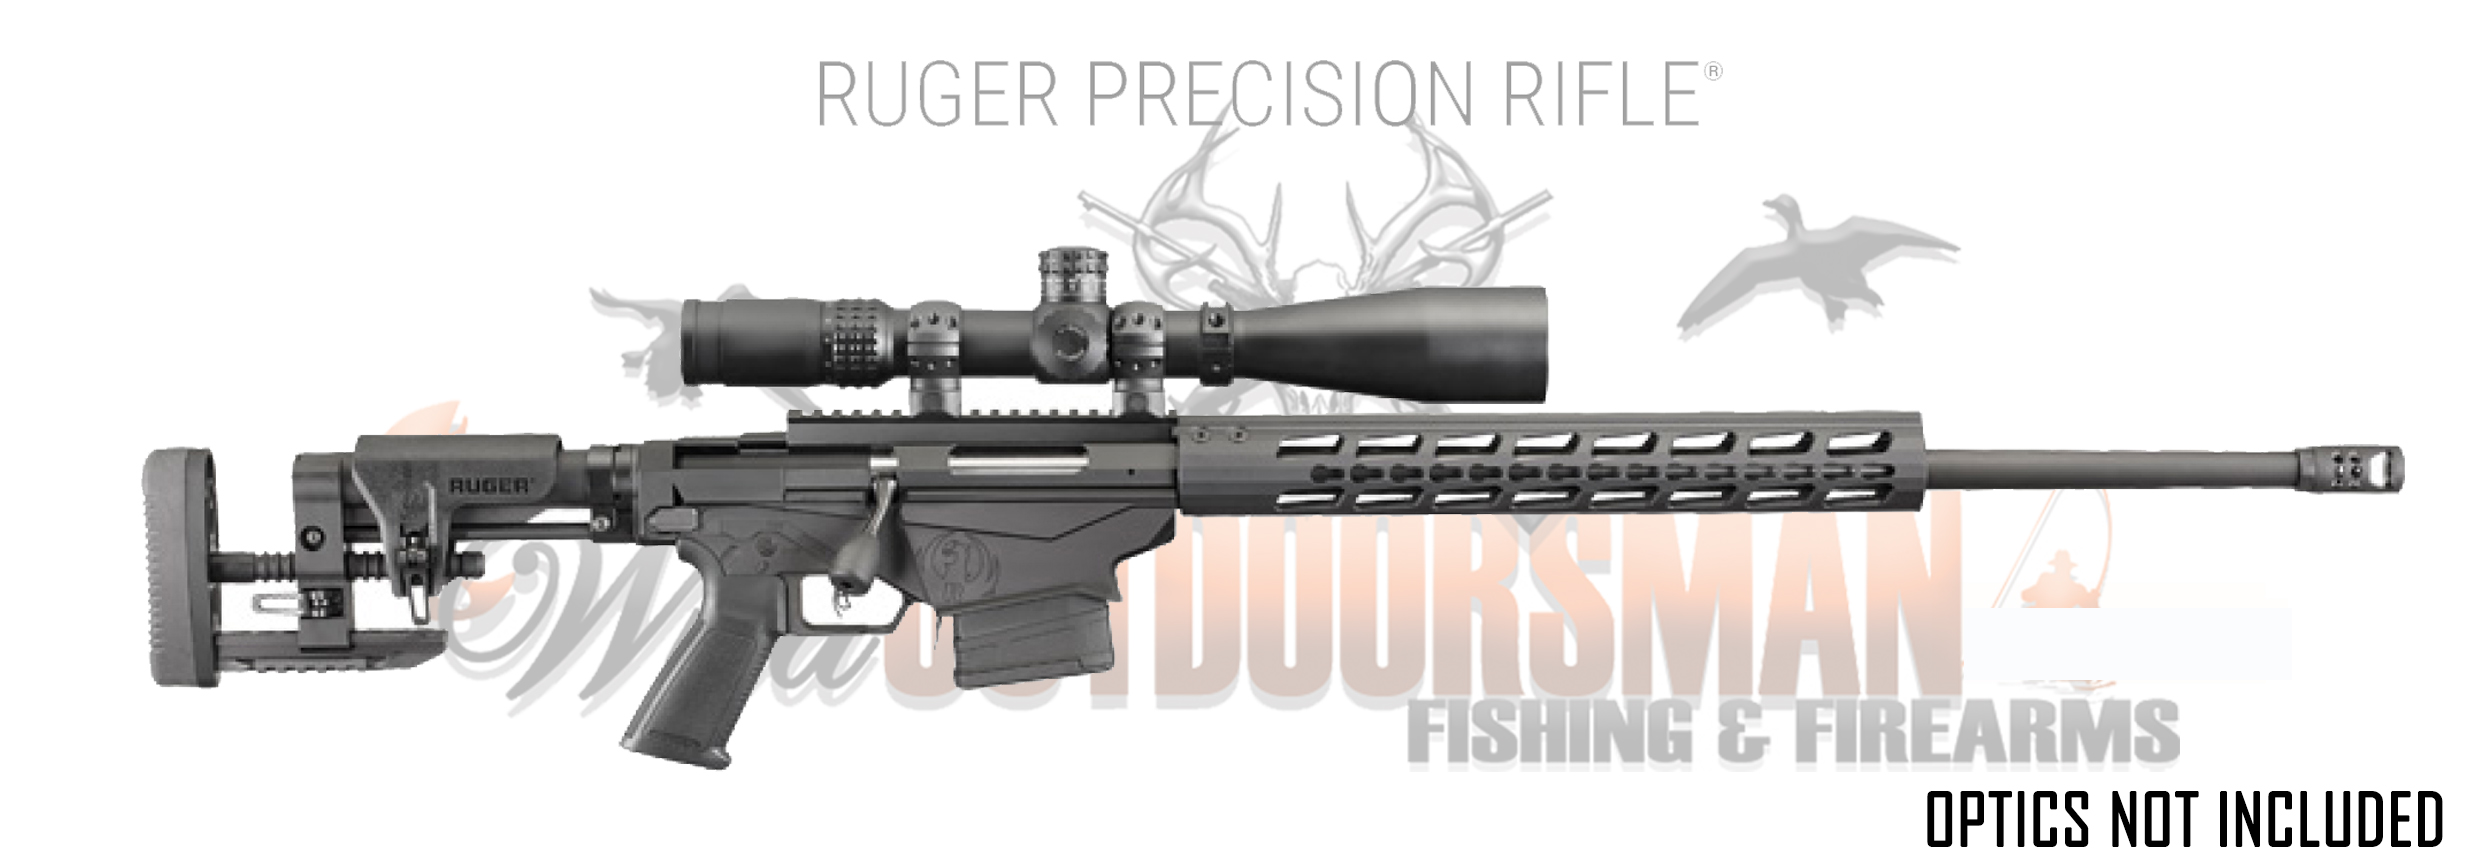 NEW Model Ruger Precision Rifle 6.5 Creedmoor - INSTOCK